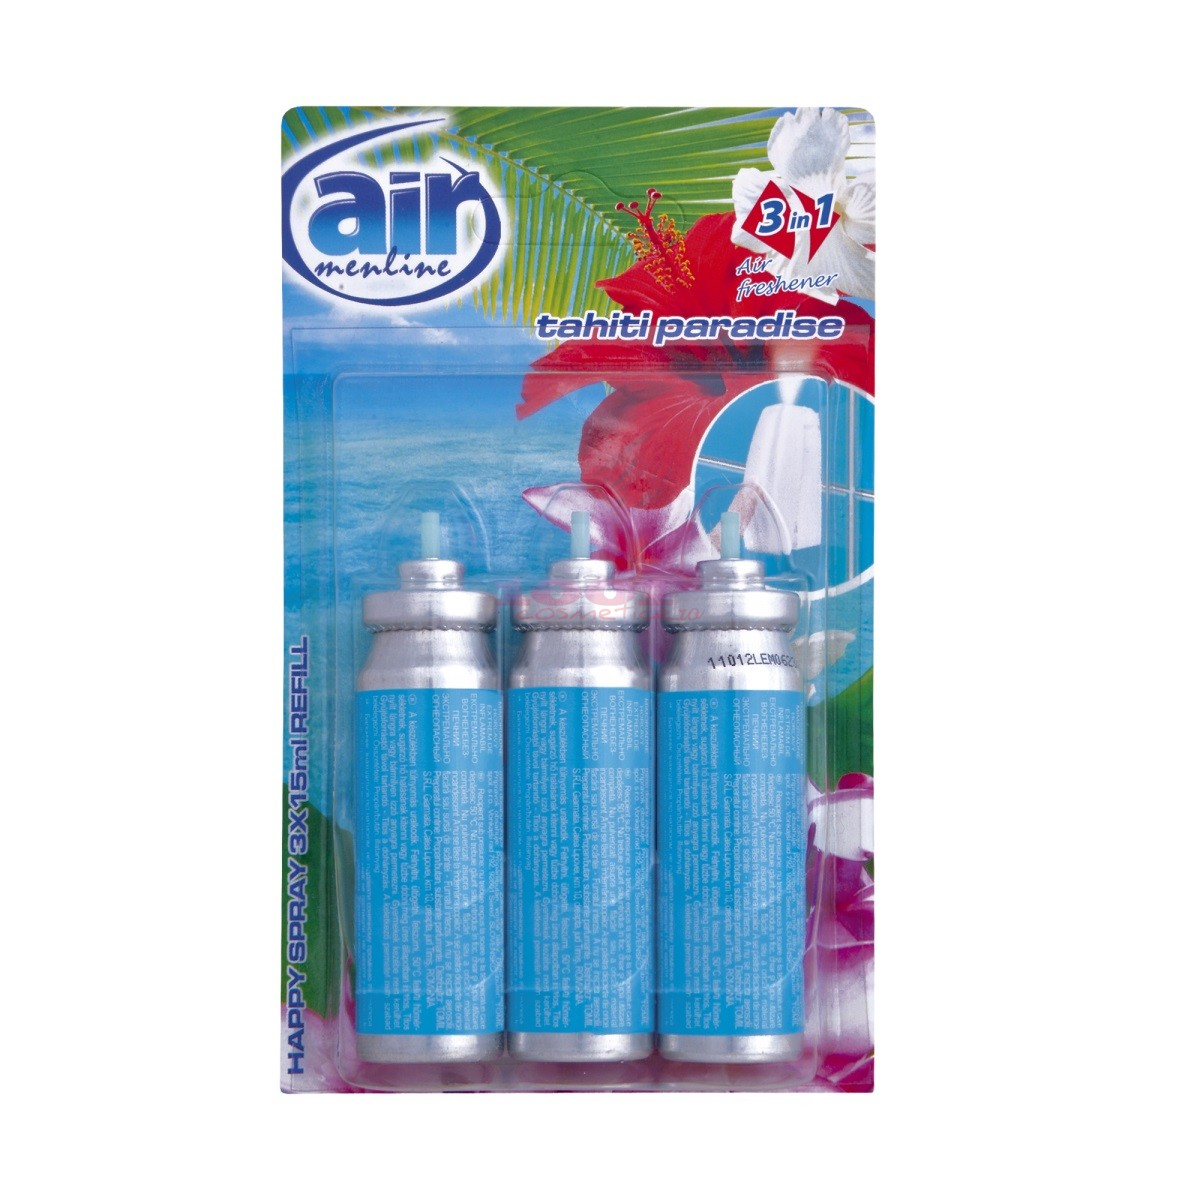 AIR MENLINE 3IN1 SPRAY REZERVA SET 3 BUCATI TAHITI PARADISE